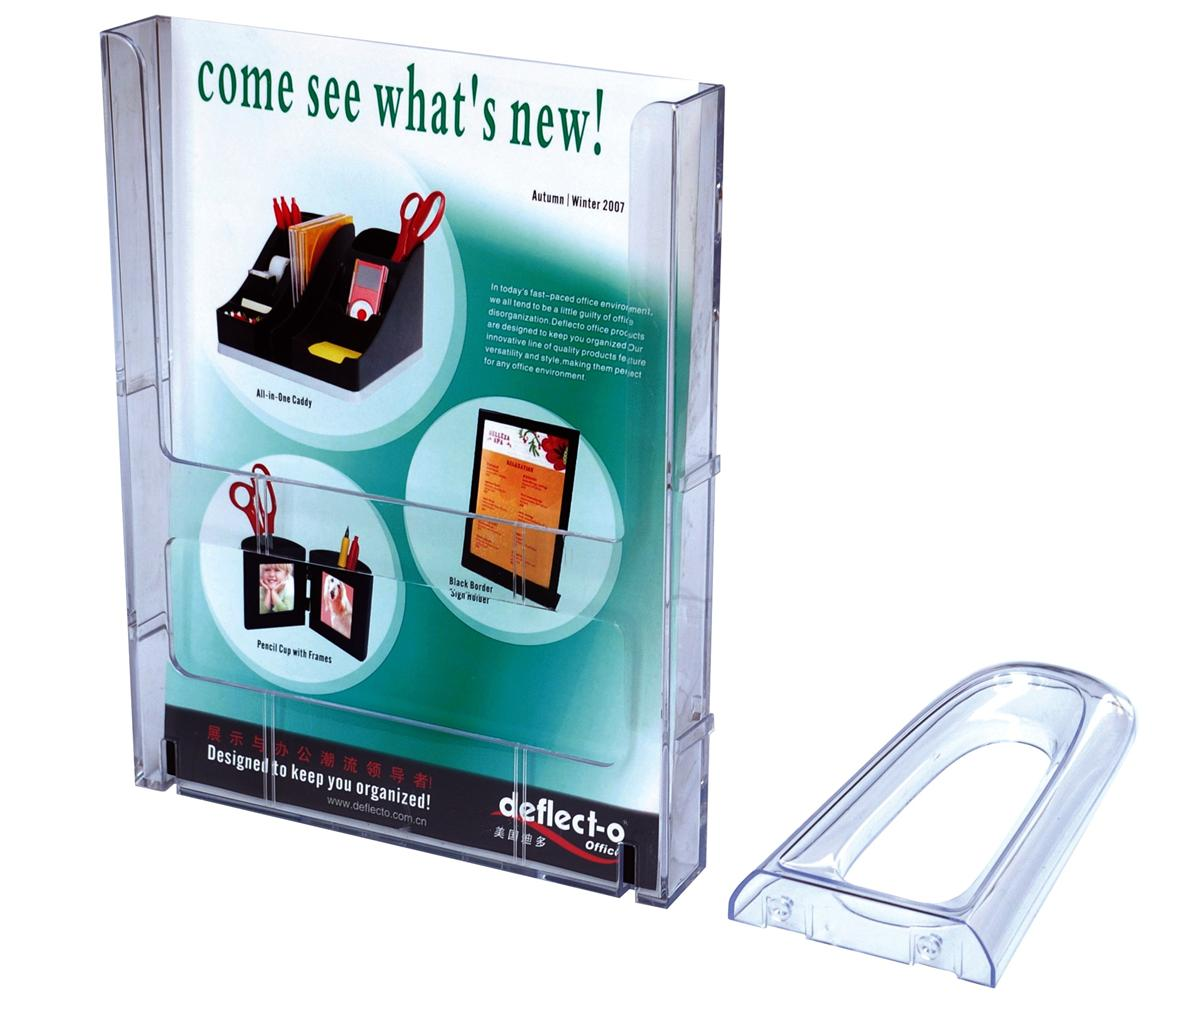 Image for Short Feet for Tiered Literature Holder 100x90mm